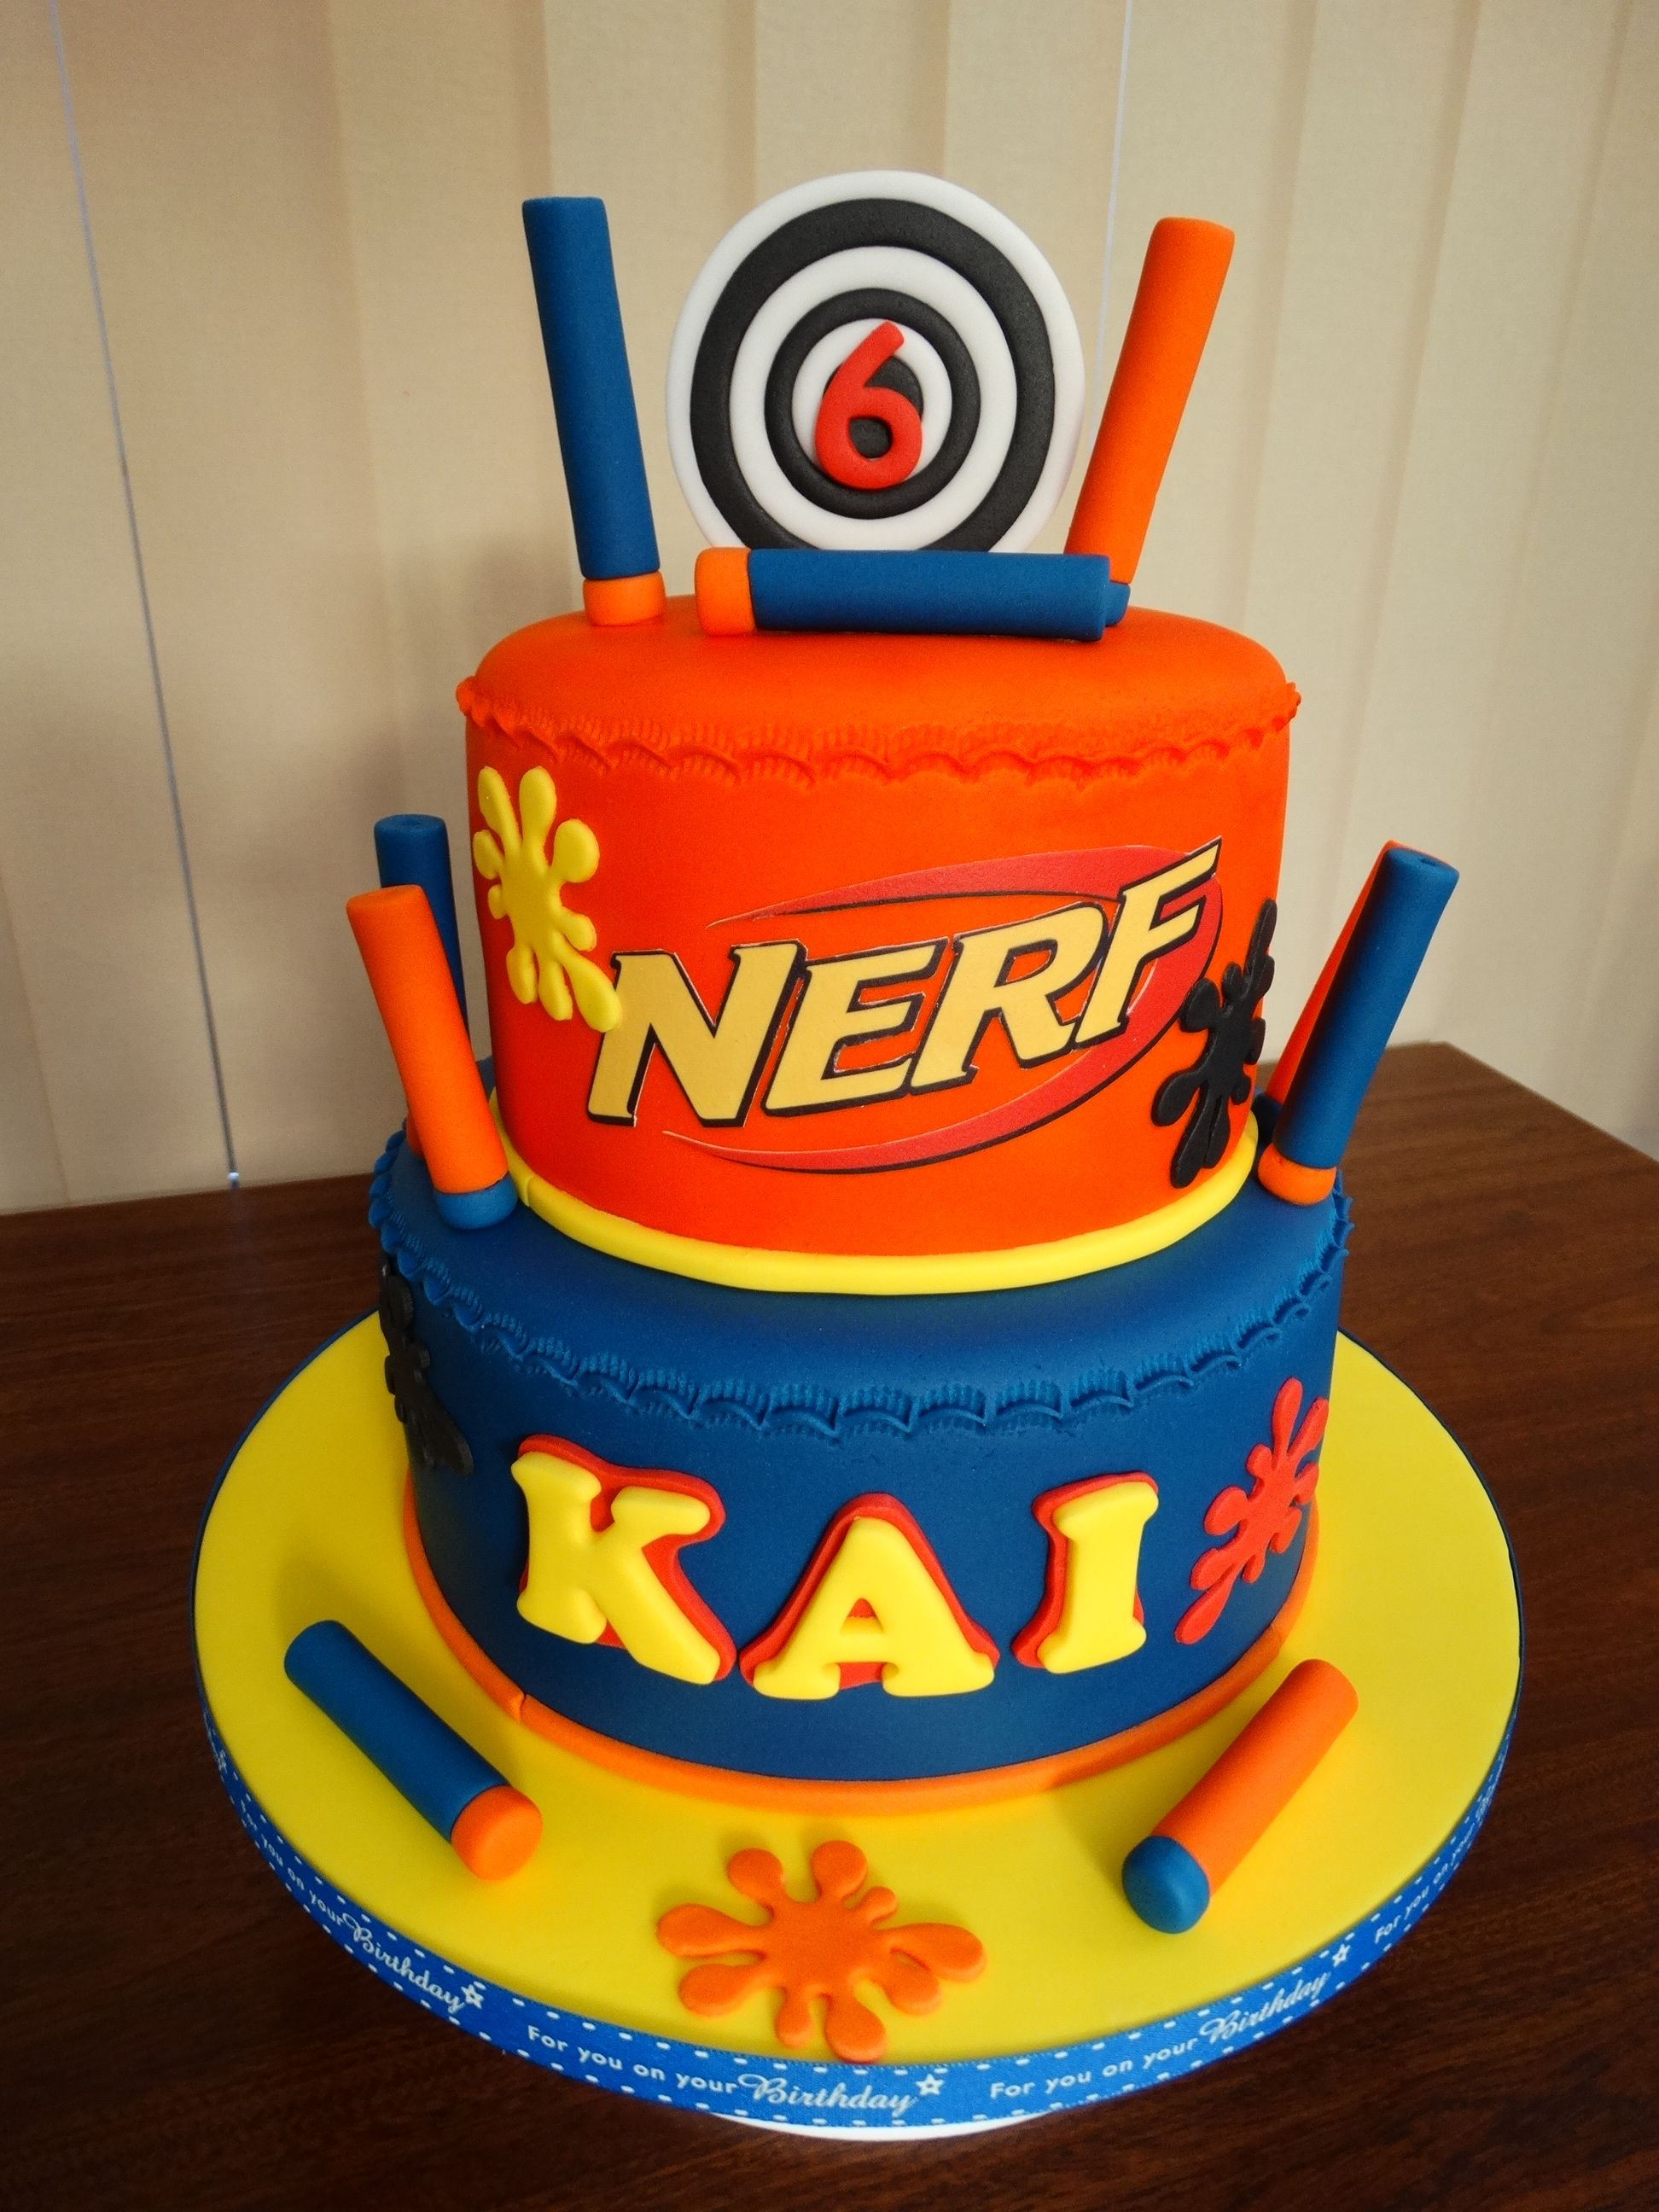 Nerf Themed Cake xMCx JJ 8th Birthday Pinterest Cake Nerf